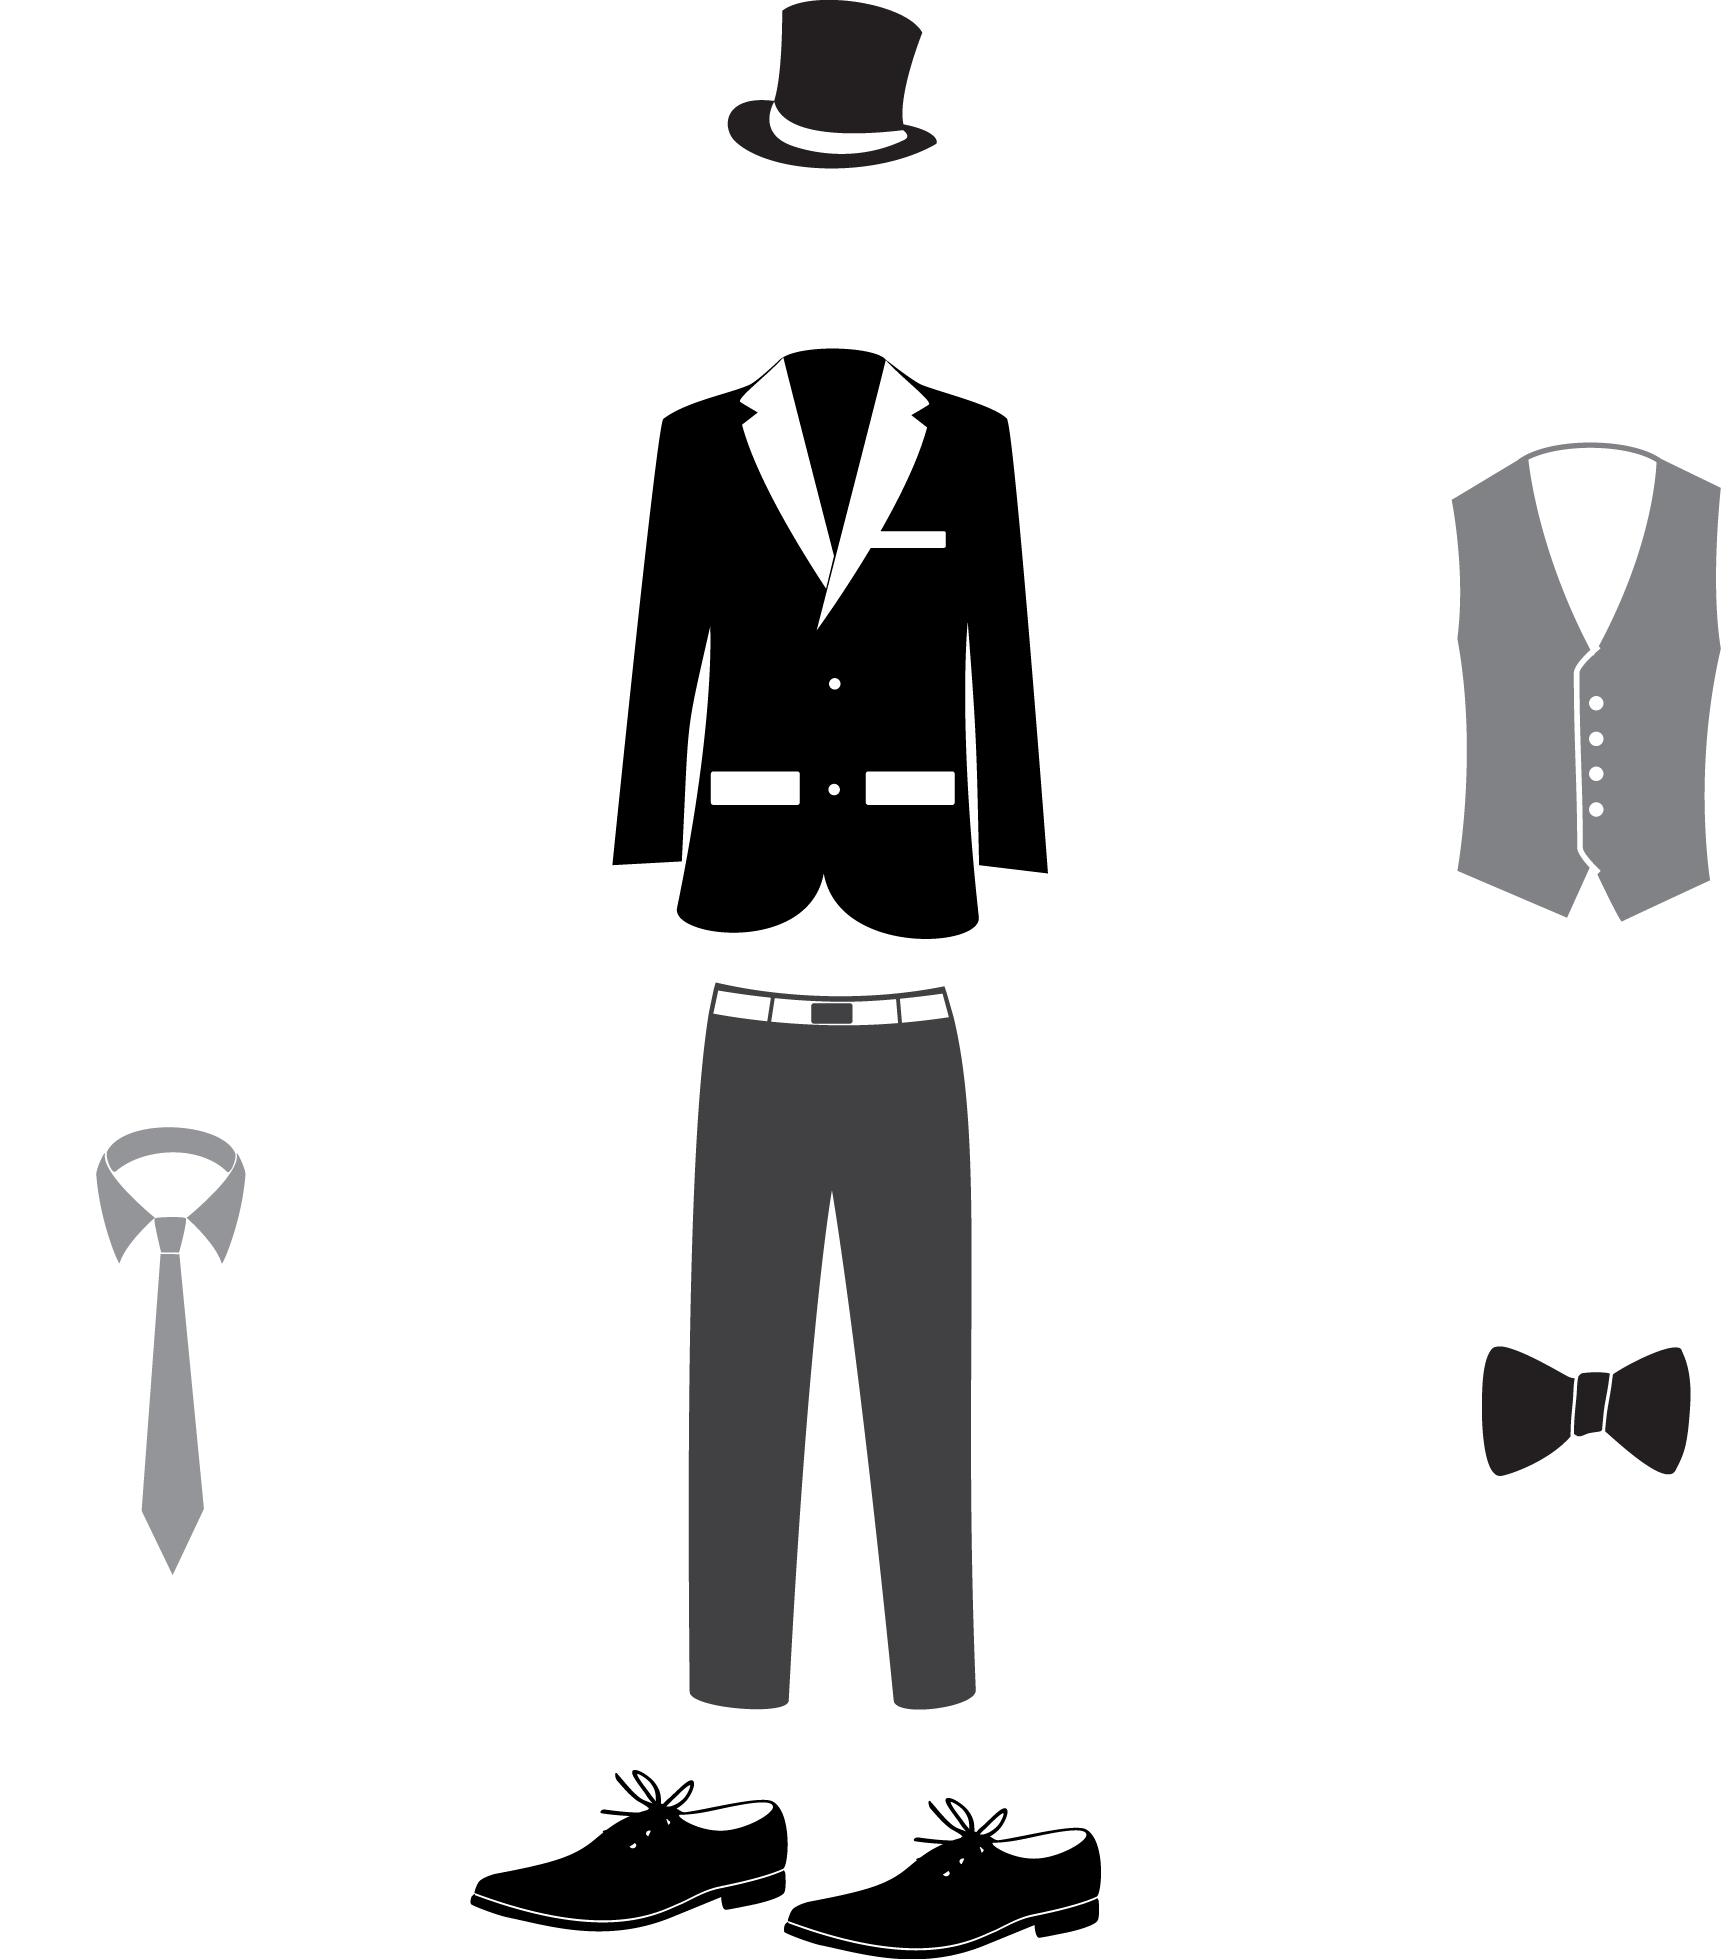 image free download Suit formal wear clothing. Tuxedo clipart